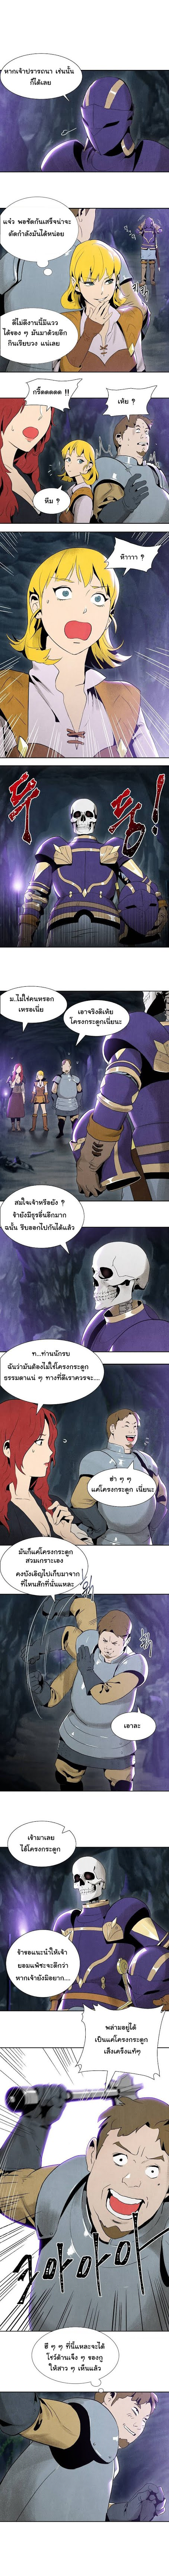 Skeleton Soldier - หน้า 7